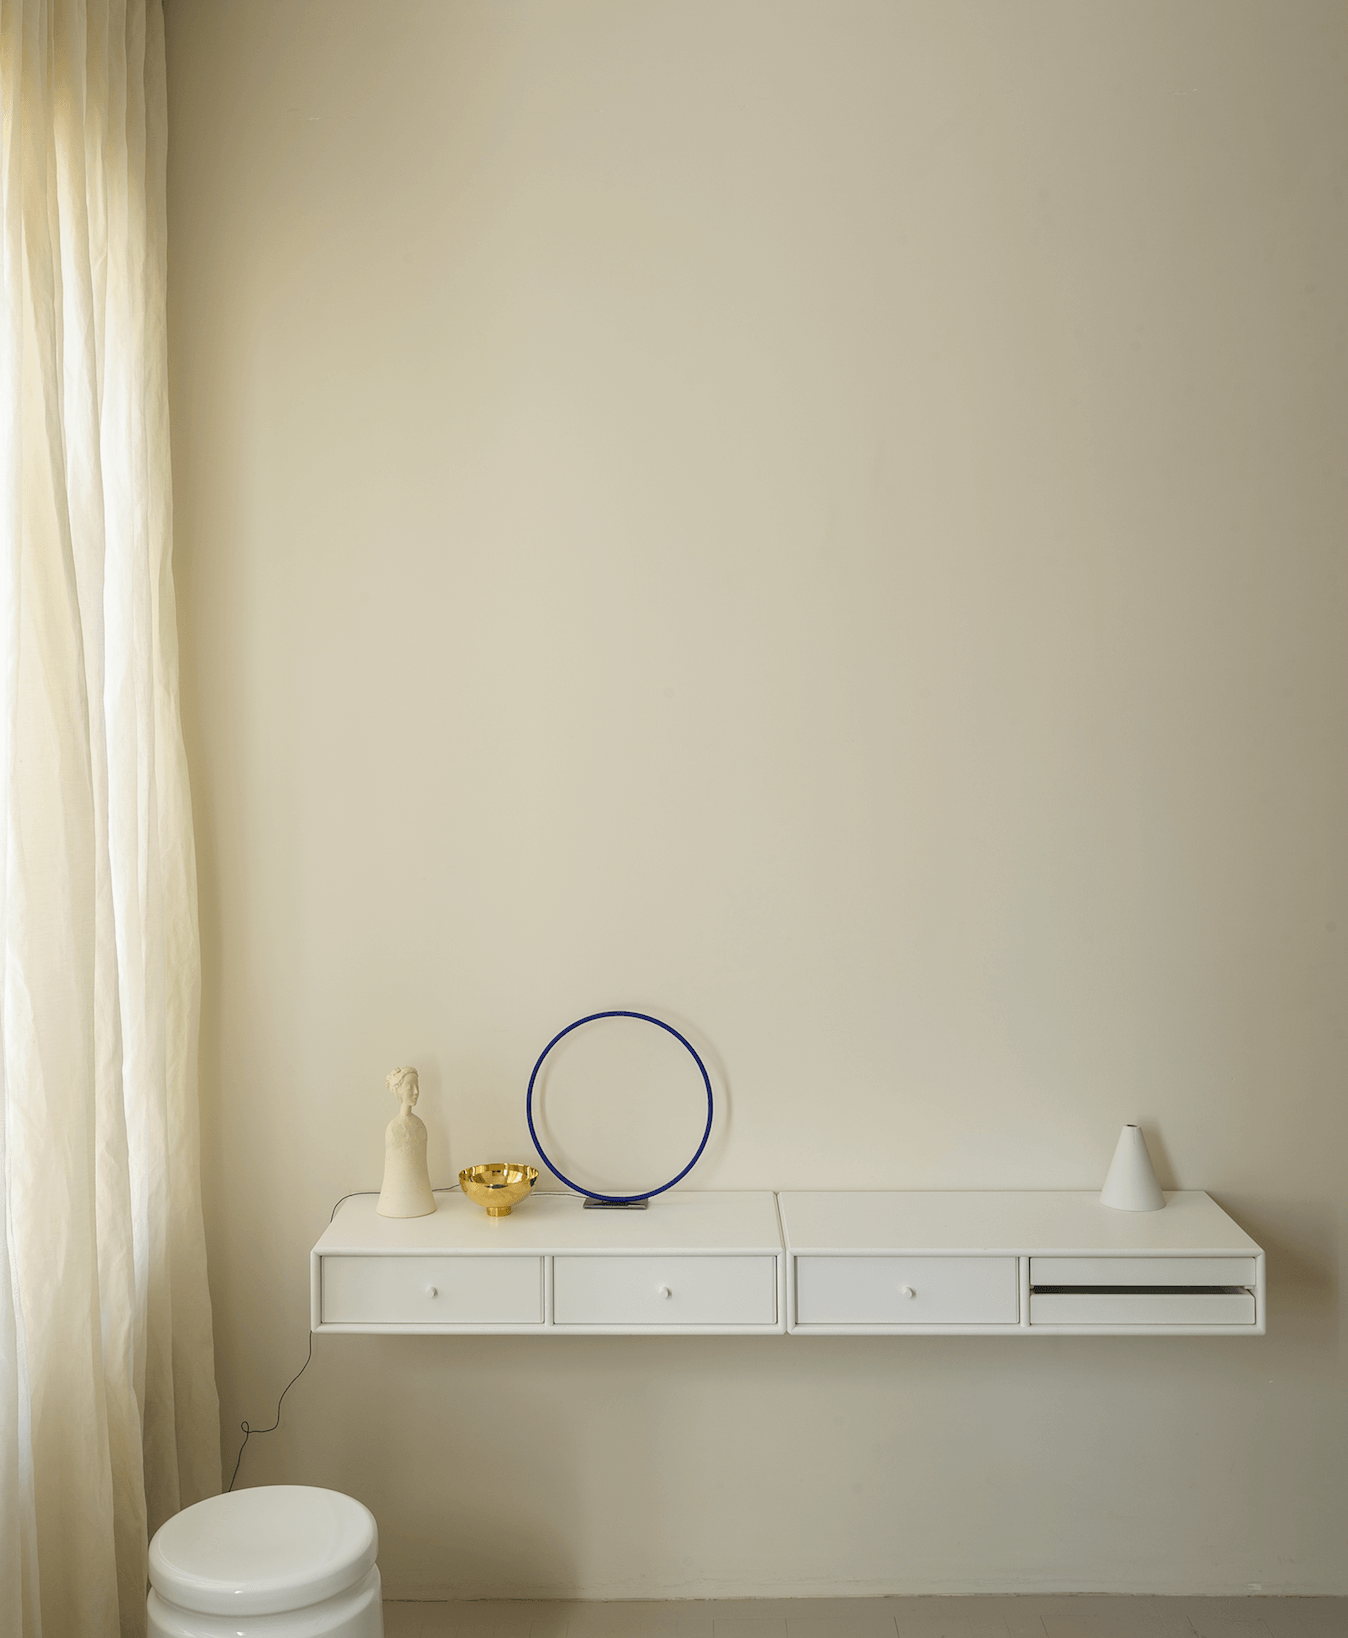 The wall-mounted shelf is the Montana Møbler Write Wall Desk in Snow. Sitting atop: a sculpture byJiro Yoshida, anIlse Bowl by Georg Jensen, aCatellani & Smith Sorry Giotto Table Lamp, and aMarlies Neugebauer Cone Vase. The stool is the Discipline Last Stool by Max Lamb.